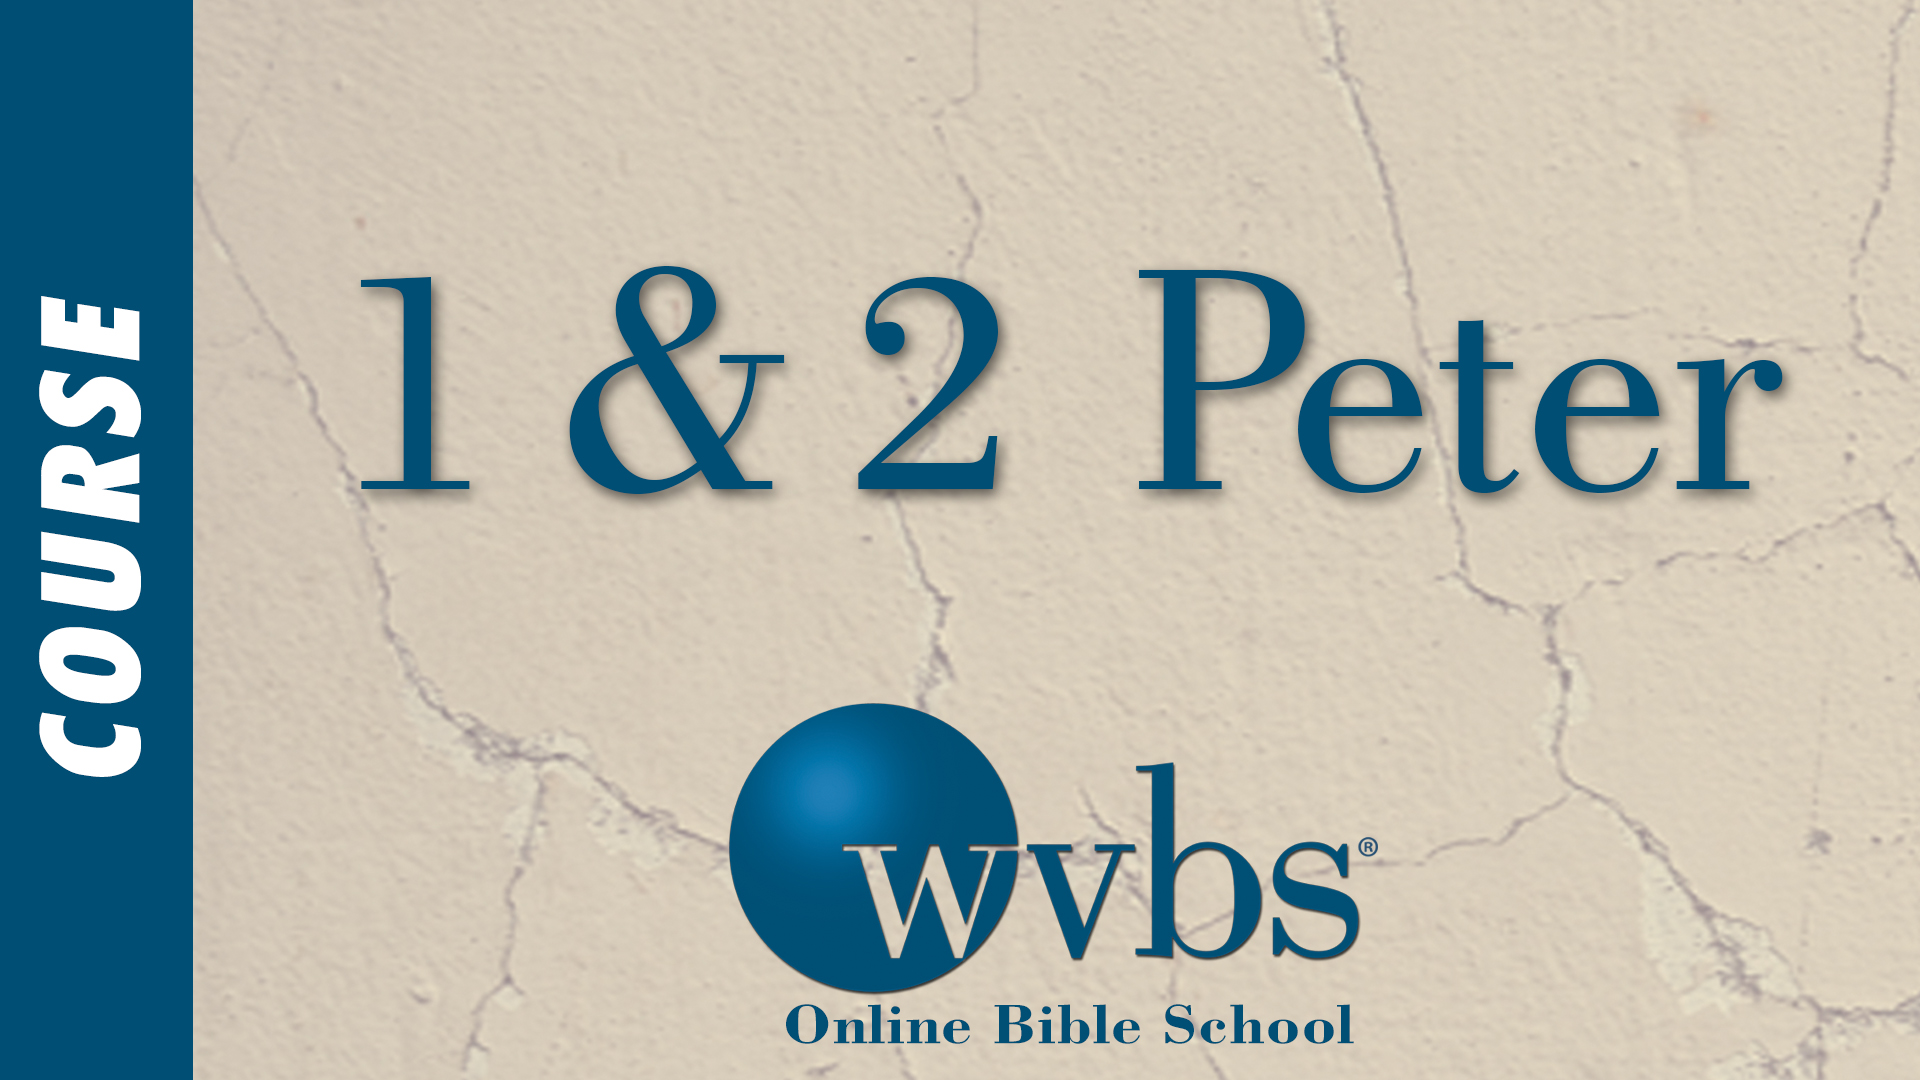 1st and 2nd Peter (Online Bible School)